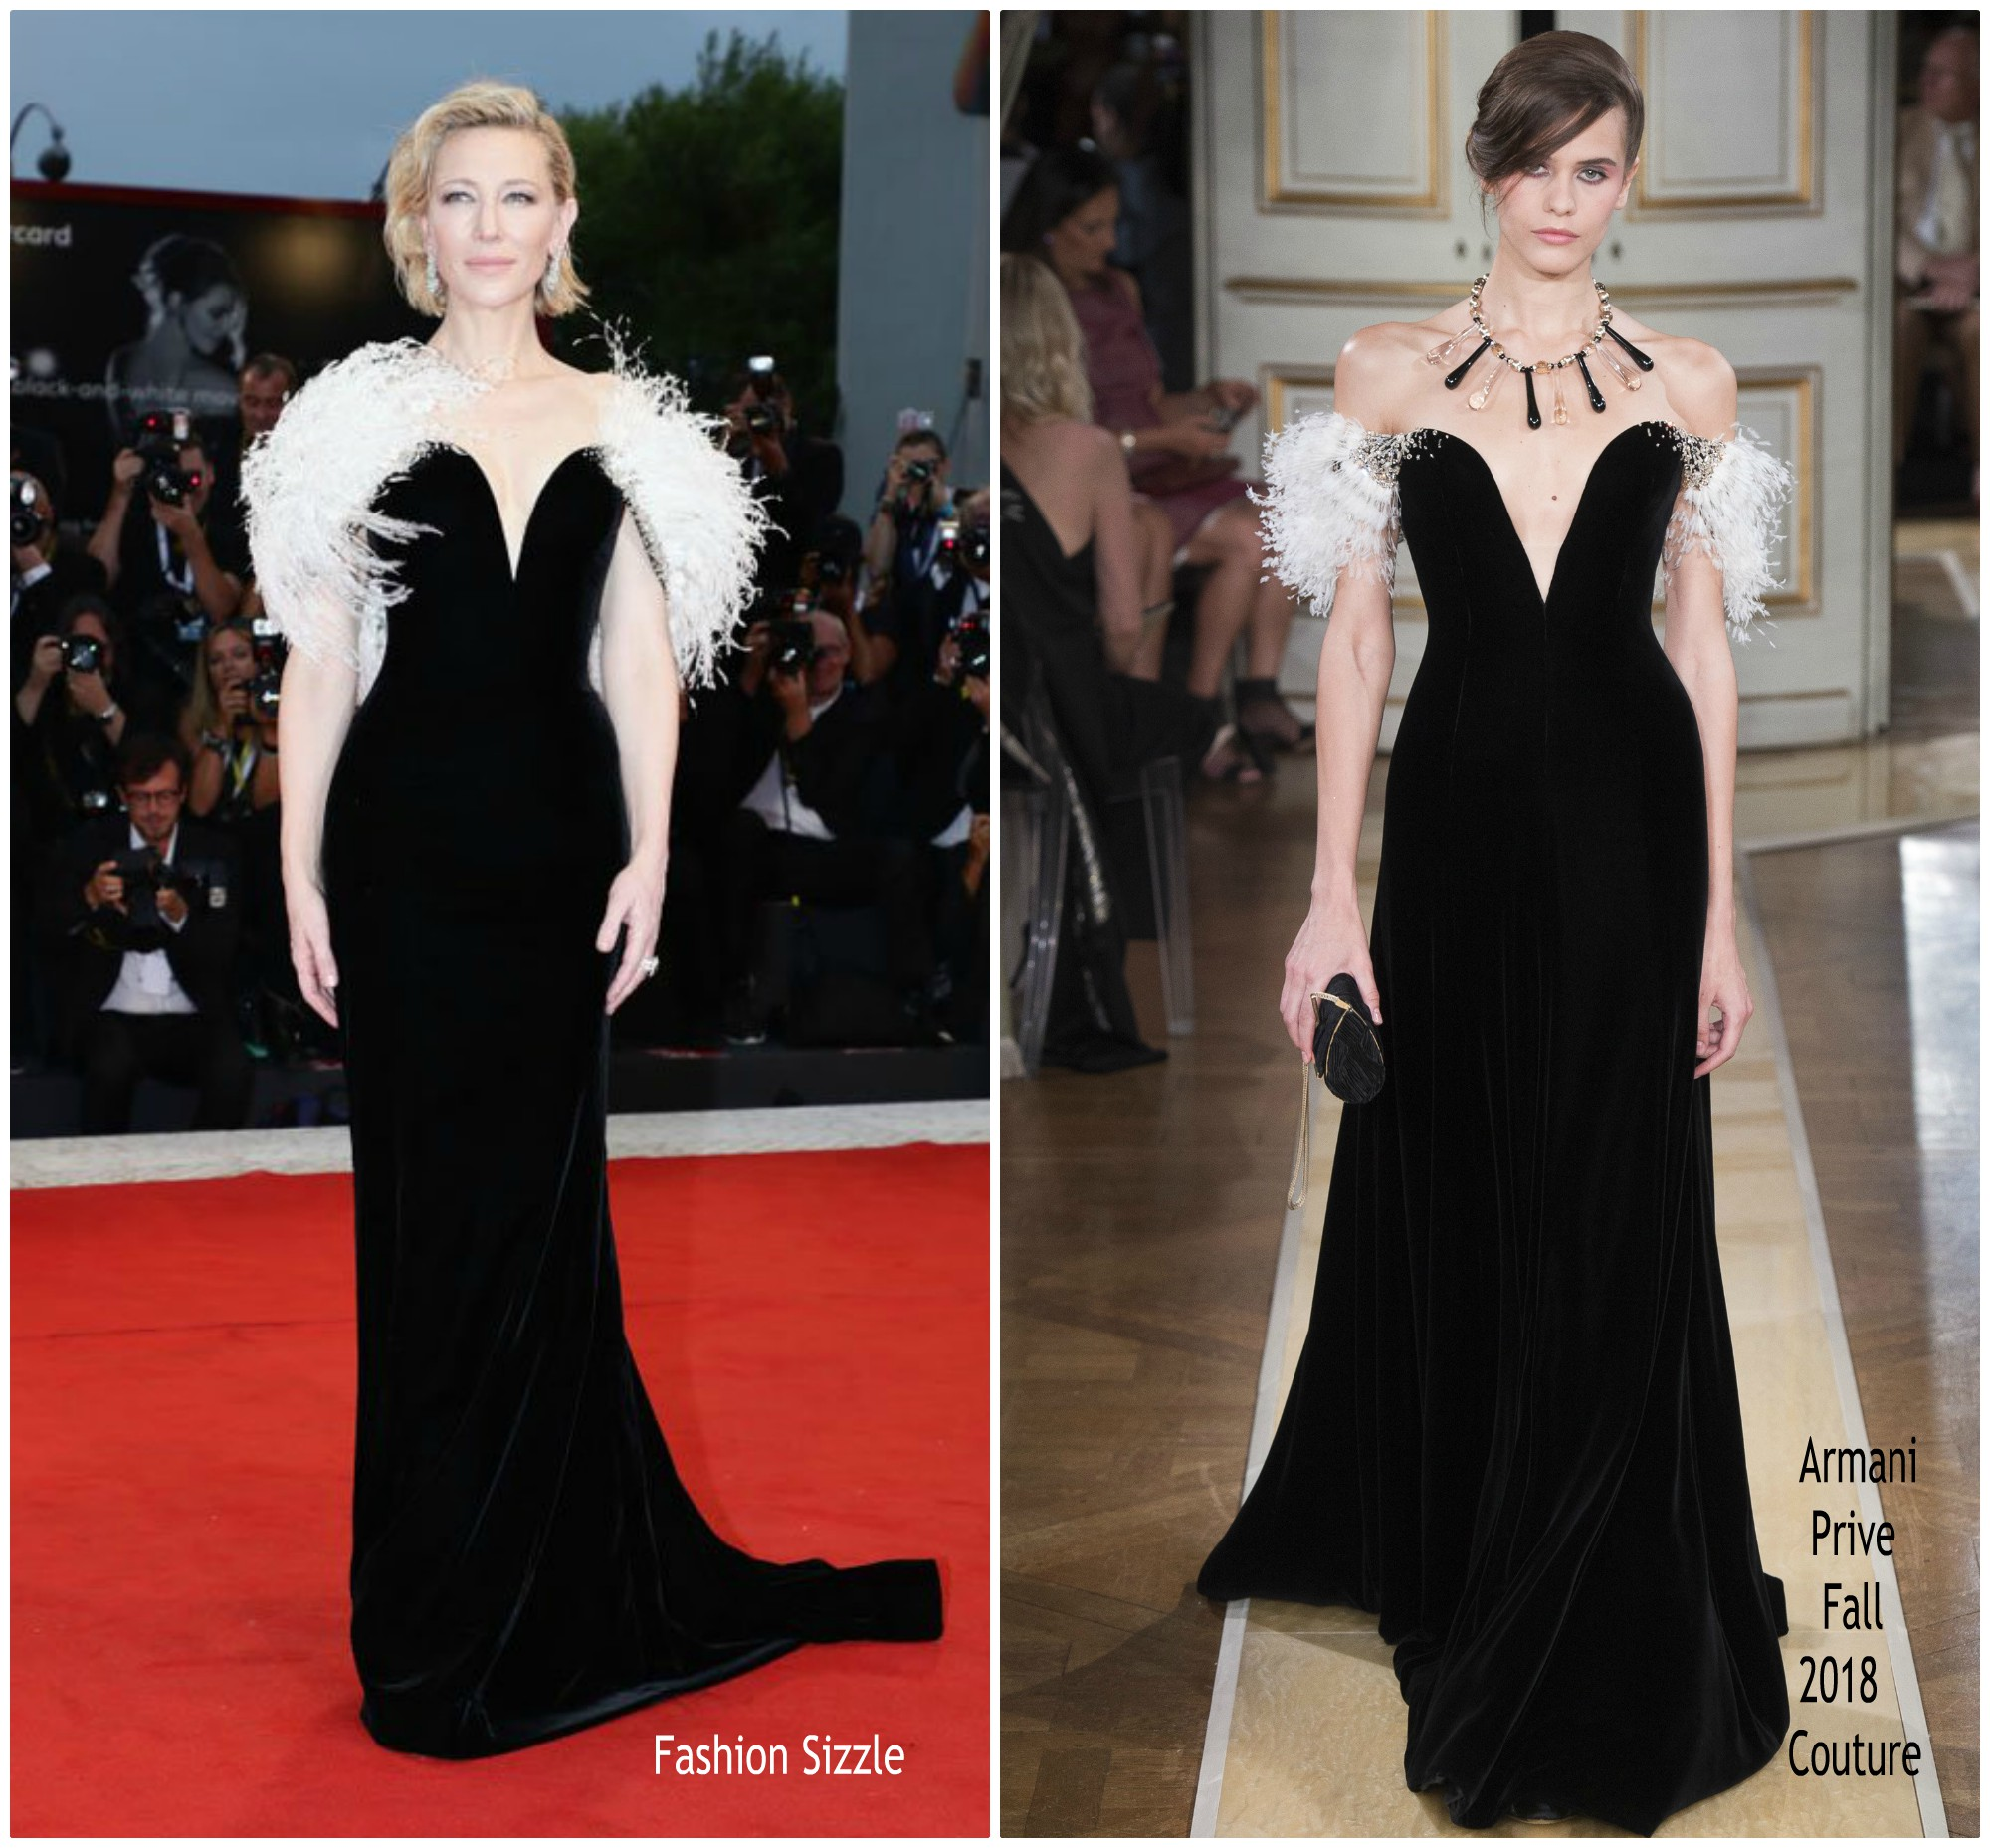 cate-blanchett-in-armani-prive-a-star-is-born-venice-film-festival-premiere